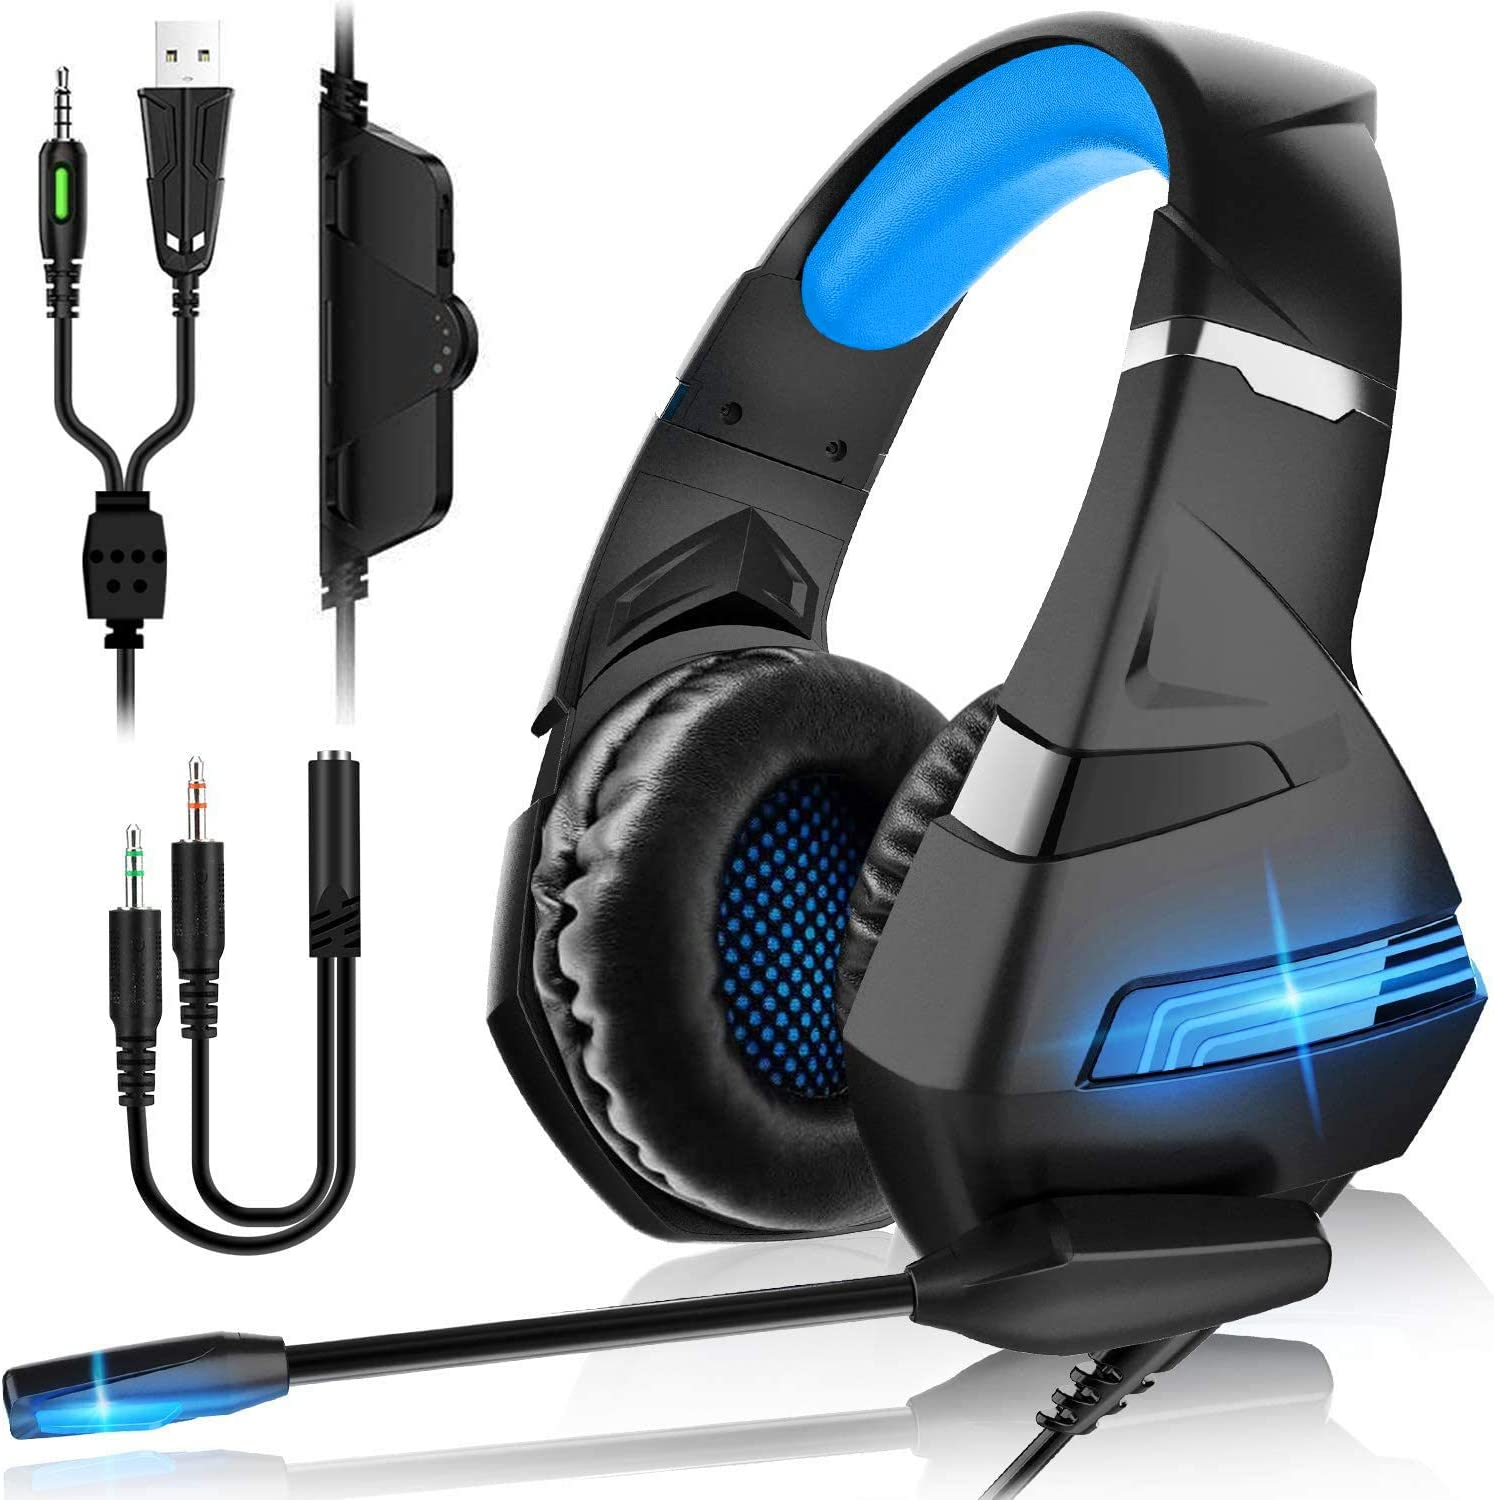 Auriculares Gaming PS4,Cascos Gaming de Mac Estéreo con Micrófono Cascos Gaming 3.5mm Jack con Luz LED Bass Surround y Cancelación de Ruido Auriculares Compatible con PC/Xbox One/ Switch